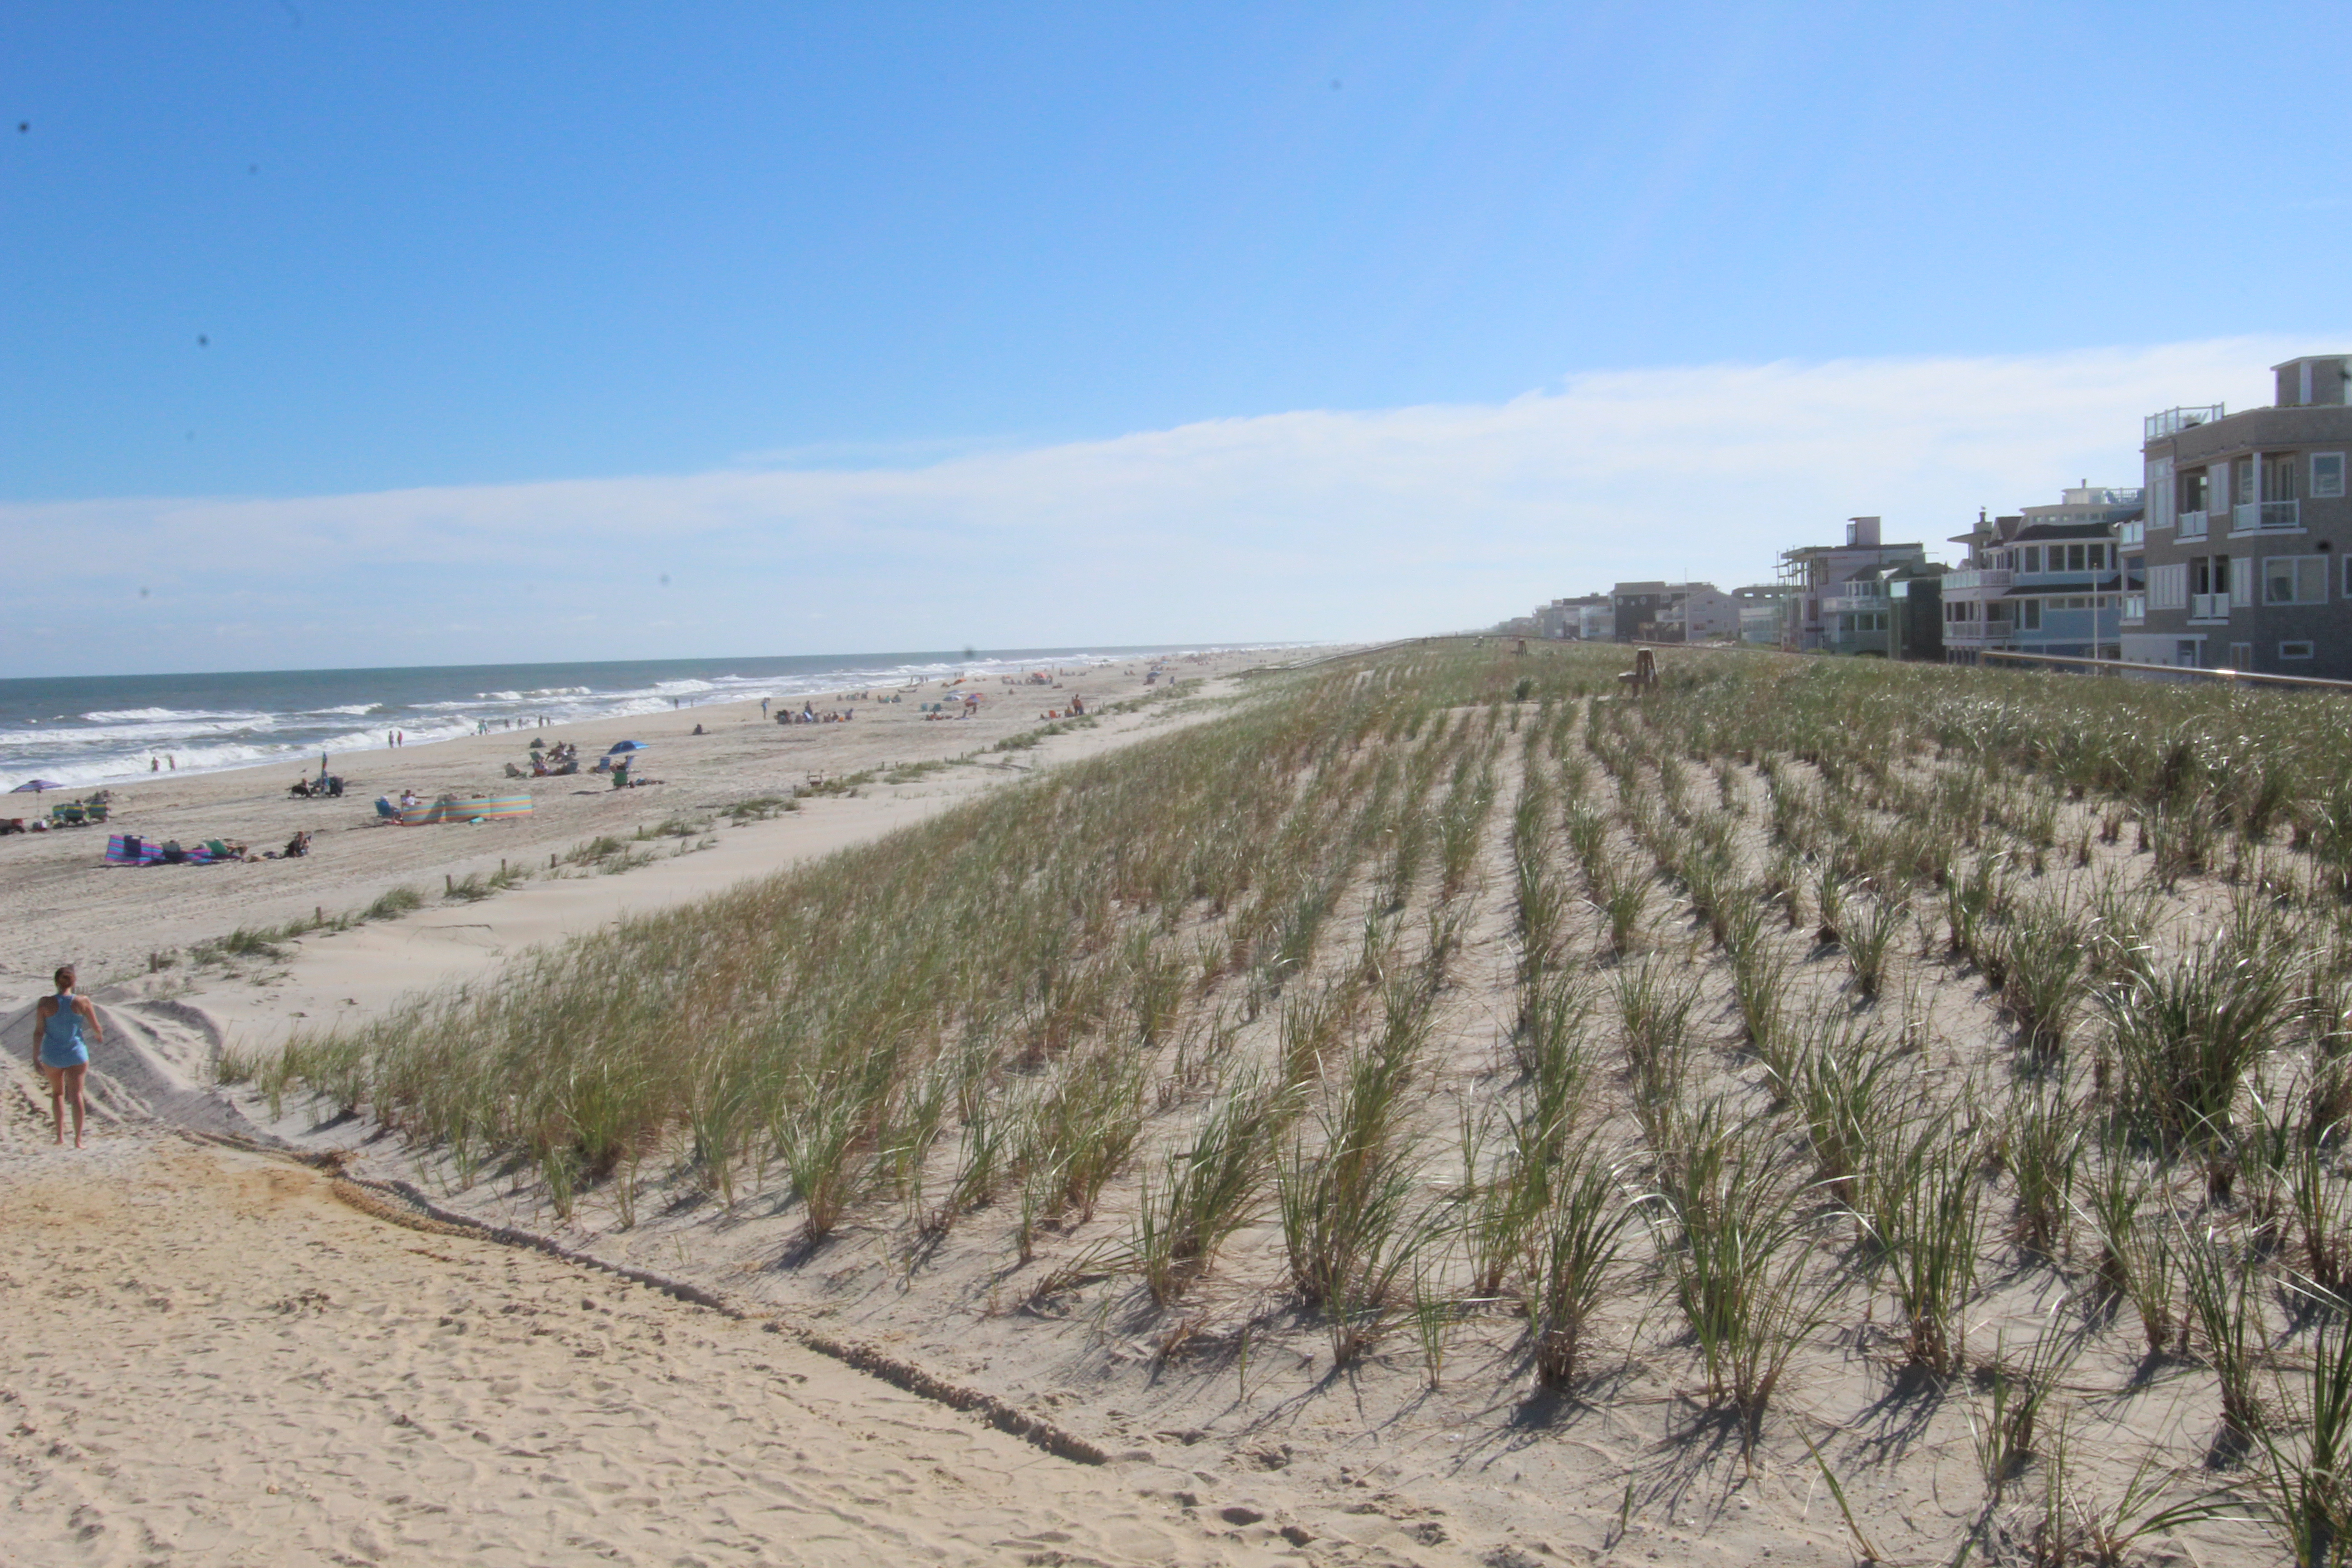 LBI Real Estate Sold vs Expired Listings October 2017-September 2018